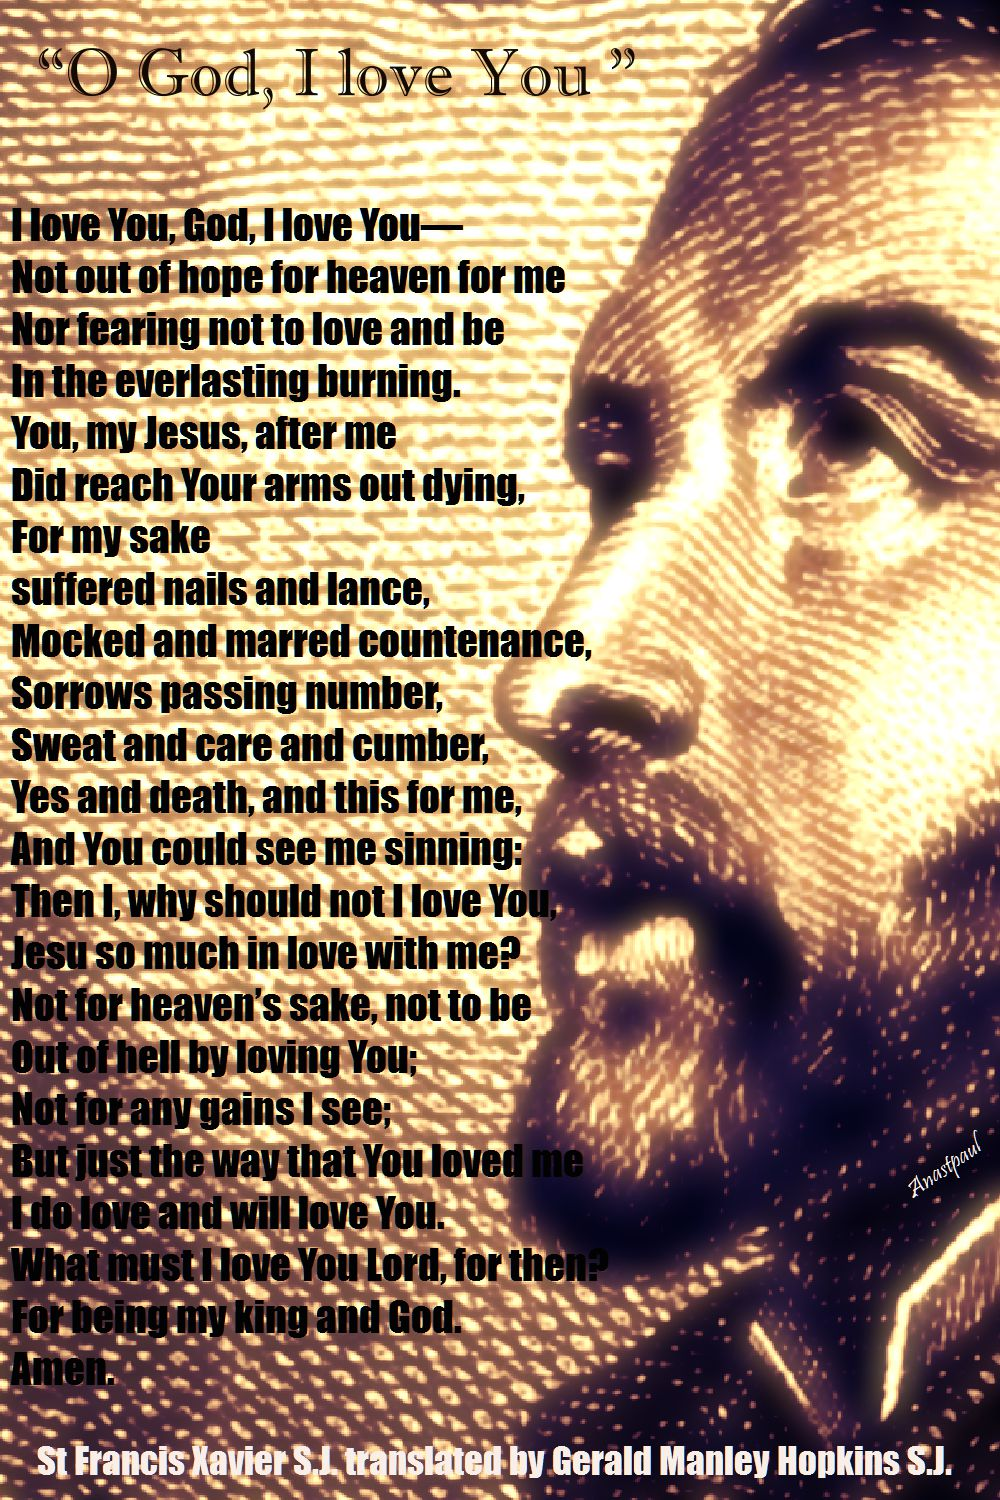 I love you lord - st francis xavier